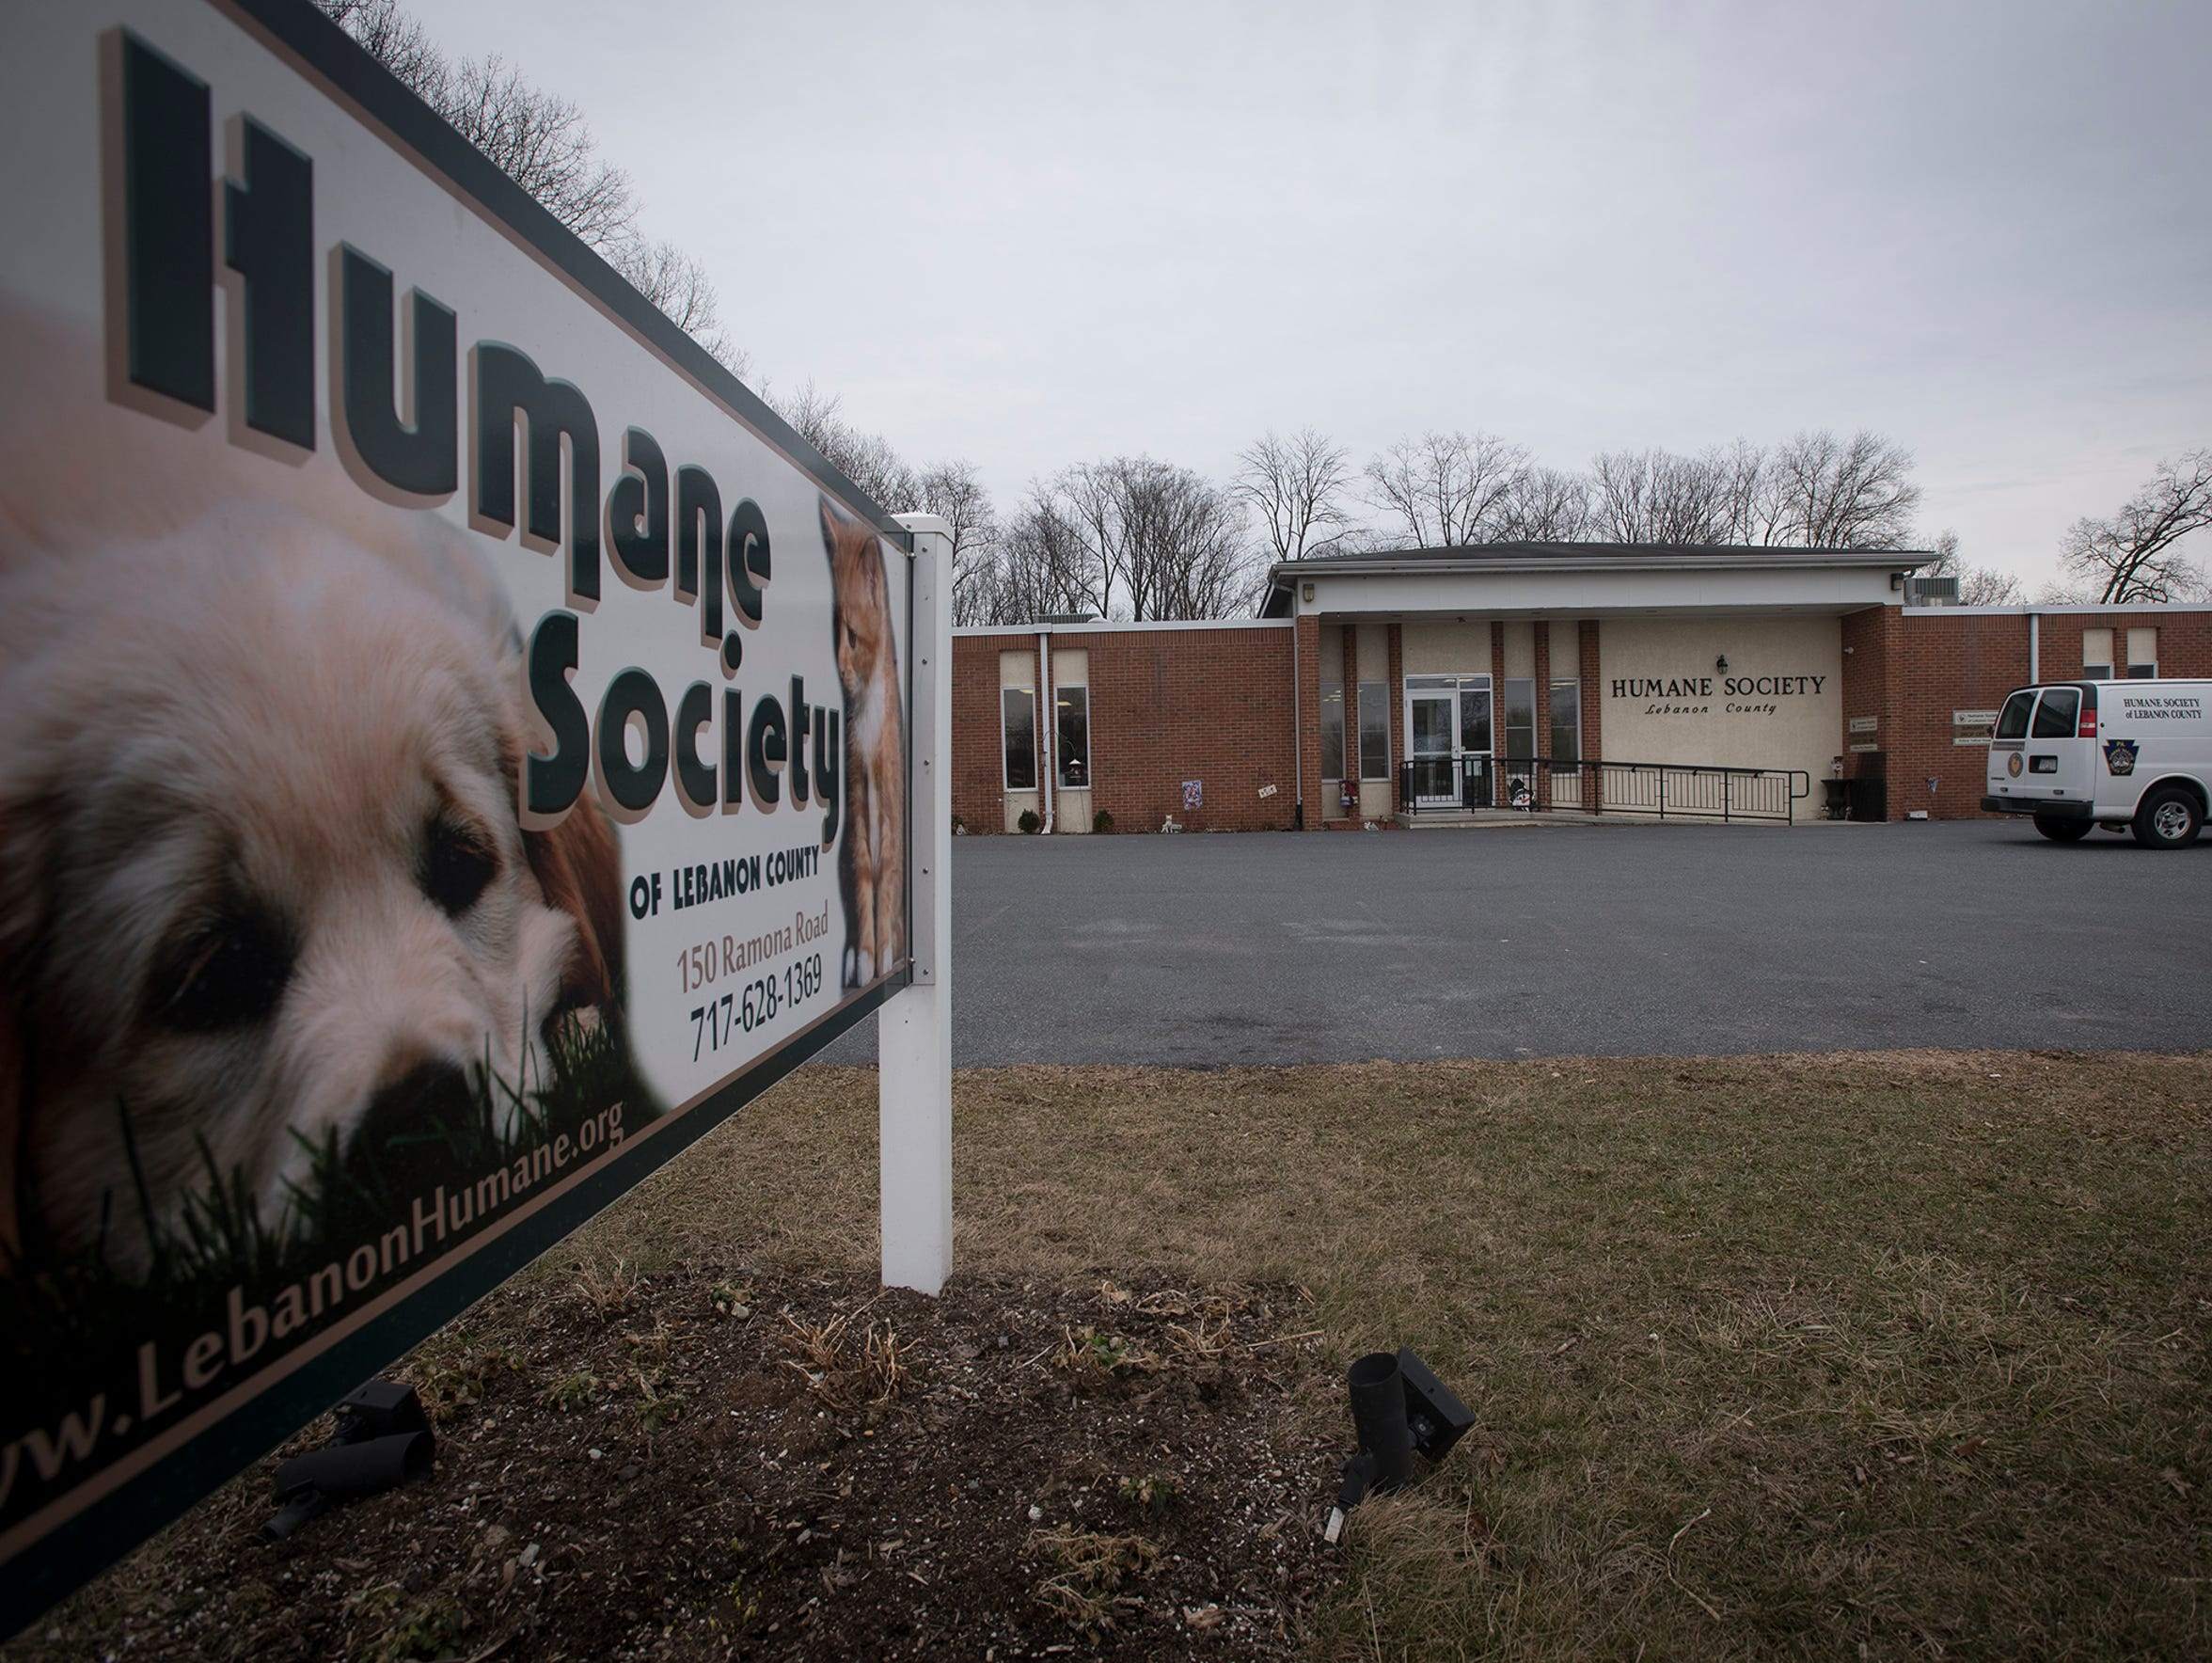 The Humane Society of Lebanon County.